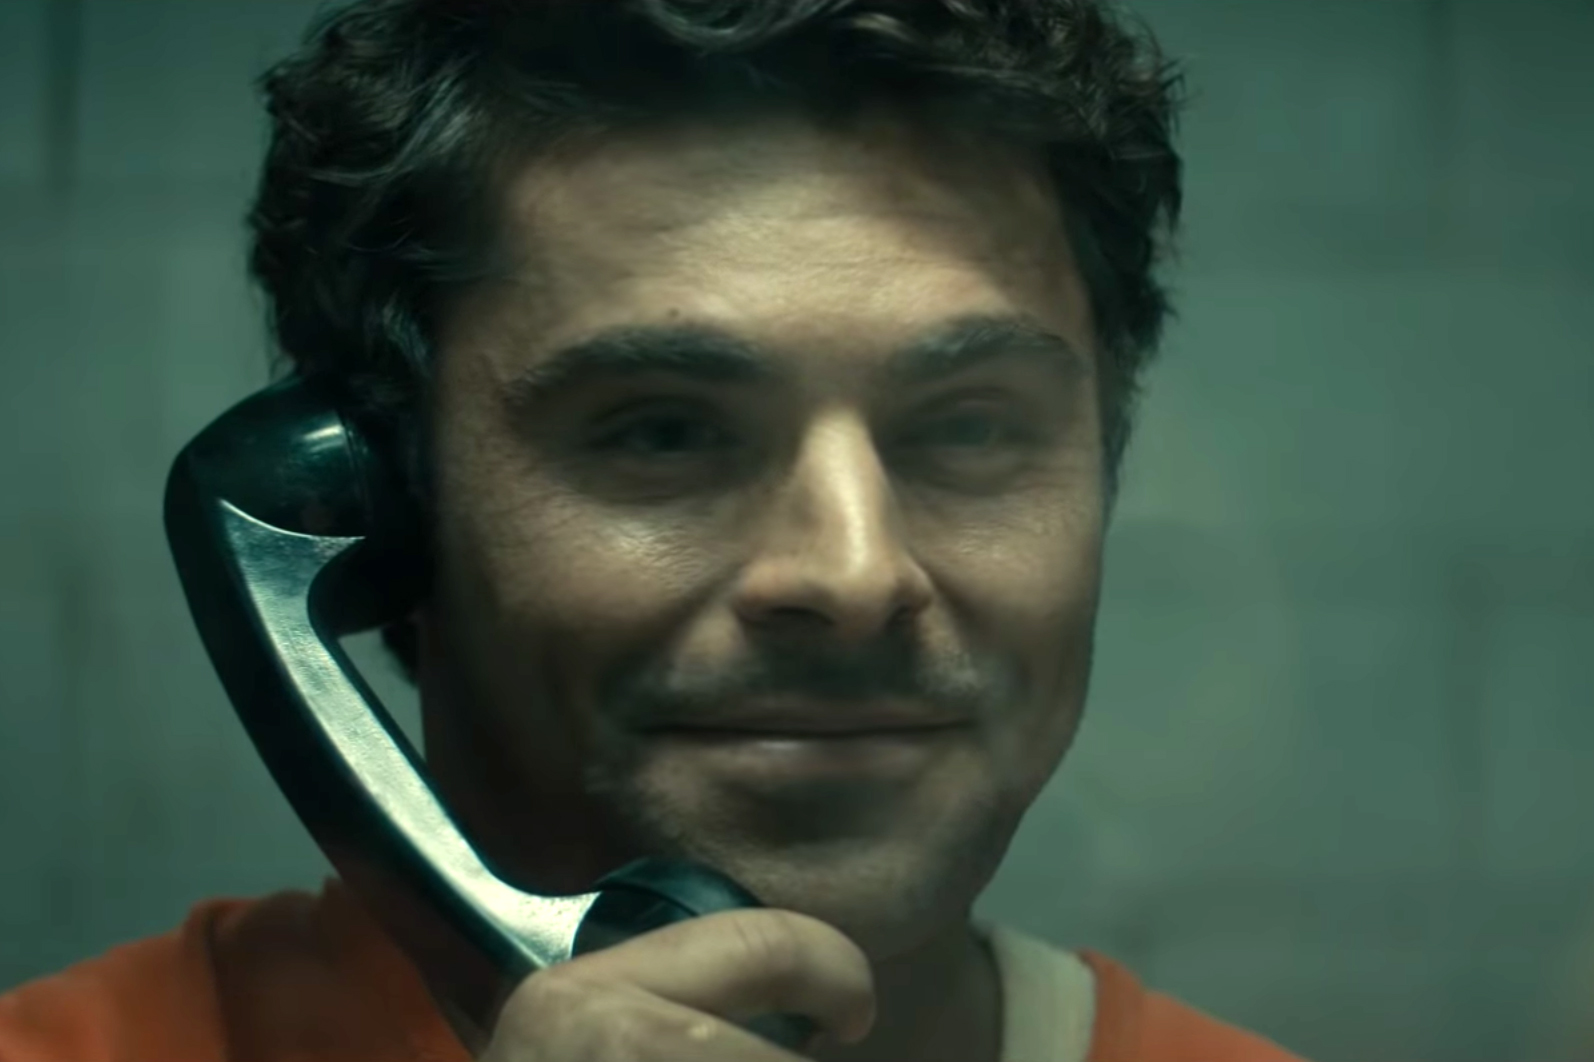 Watch Zac Efron's Chilling Portrayal of Ted Bundy in 'Extremely Wicked, Shockingly Evil and Vile' Trailer